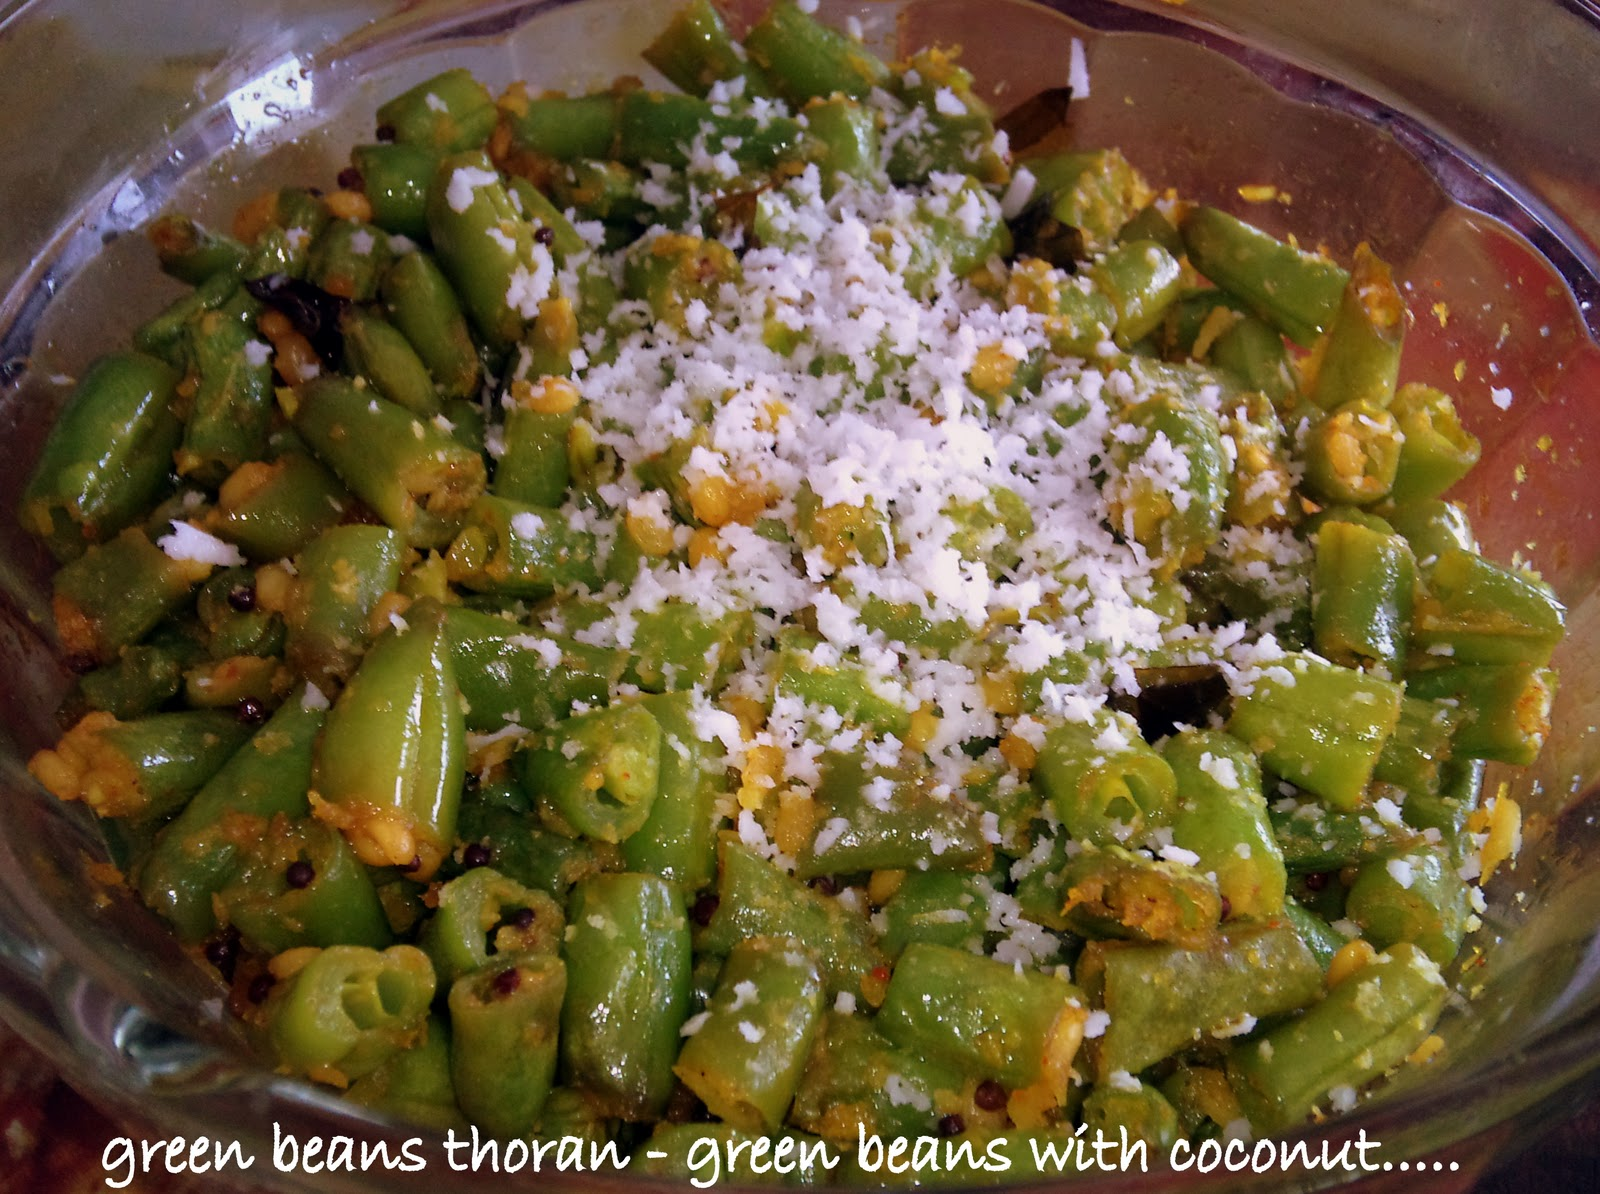 Me: From Your Blogs: Green Beans with Coconut (Green Beans Thoran